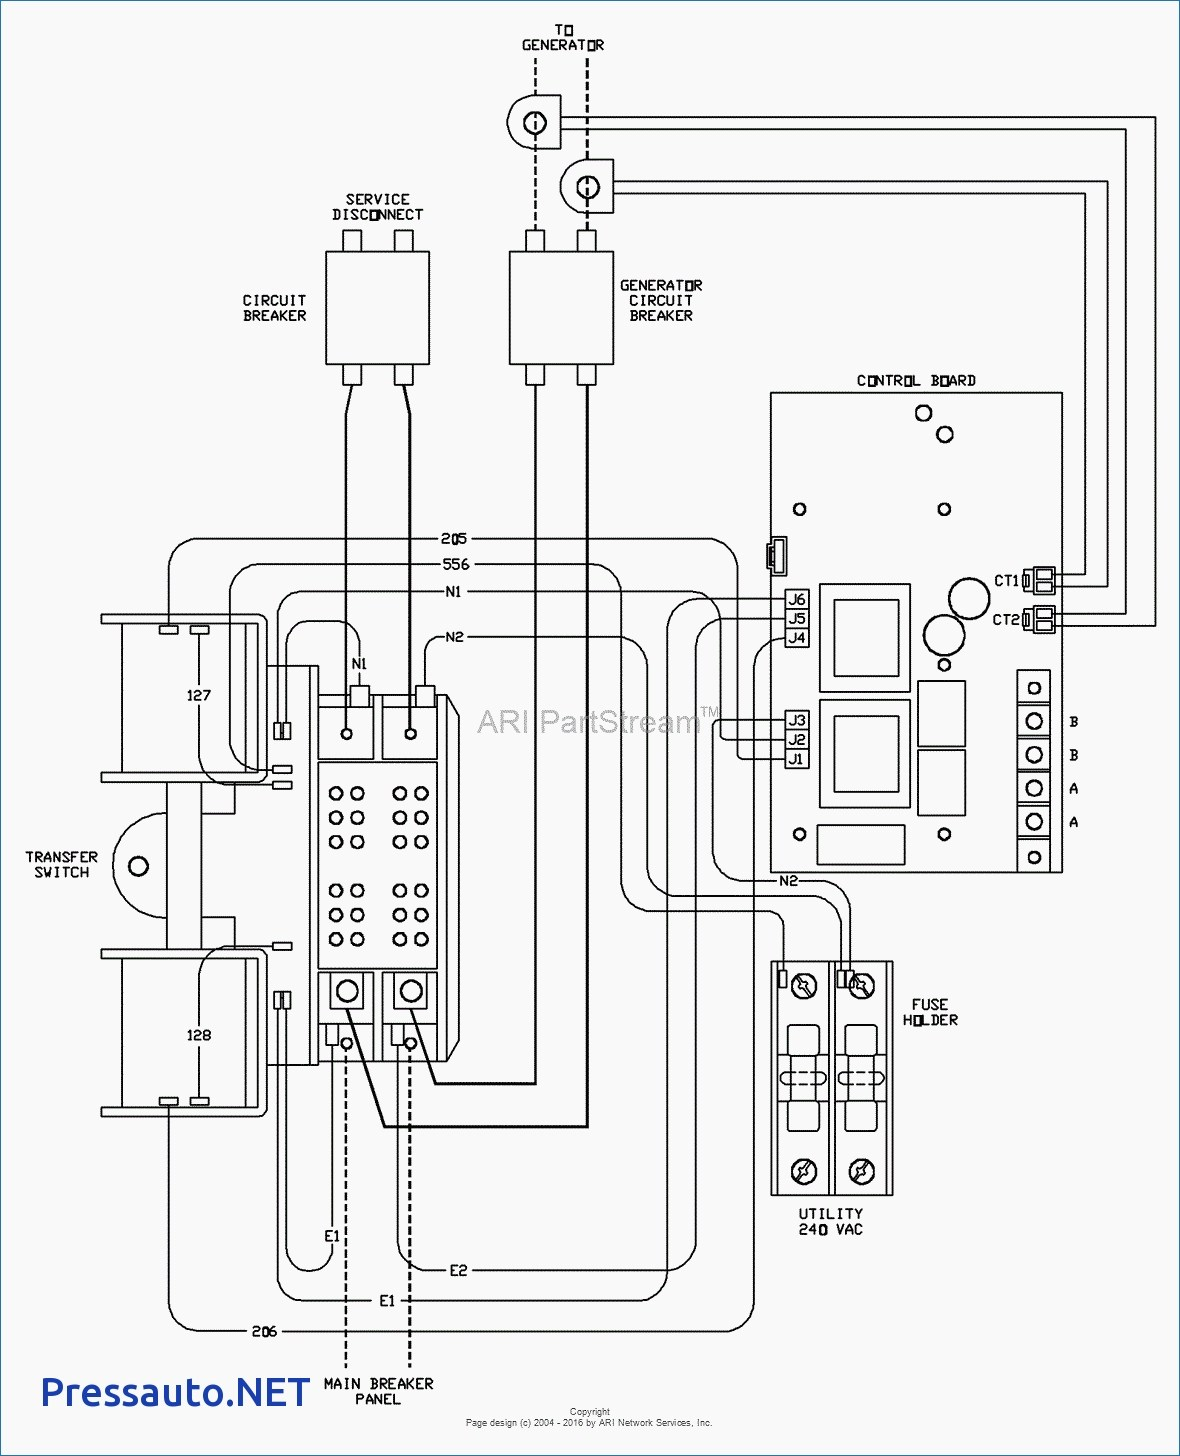 reliance generator transfer switch wiring diagram Download-Whole House Transfer Switch Wiring Diagram Beautiful Generator Manual Transfer Switch Wiring Diagram 2-t